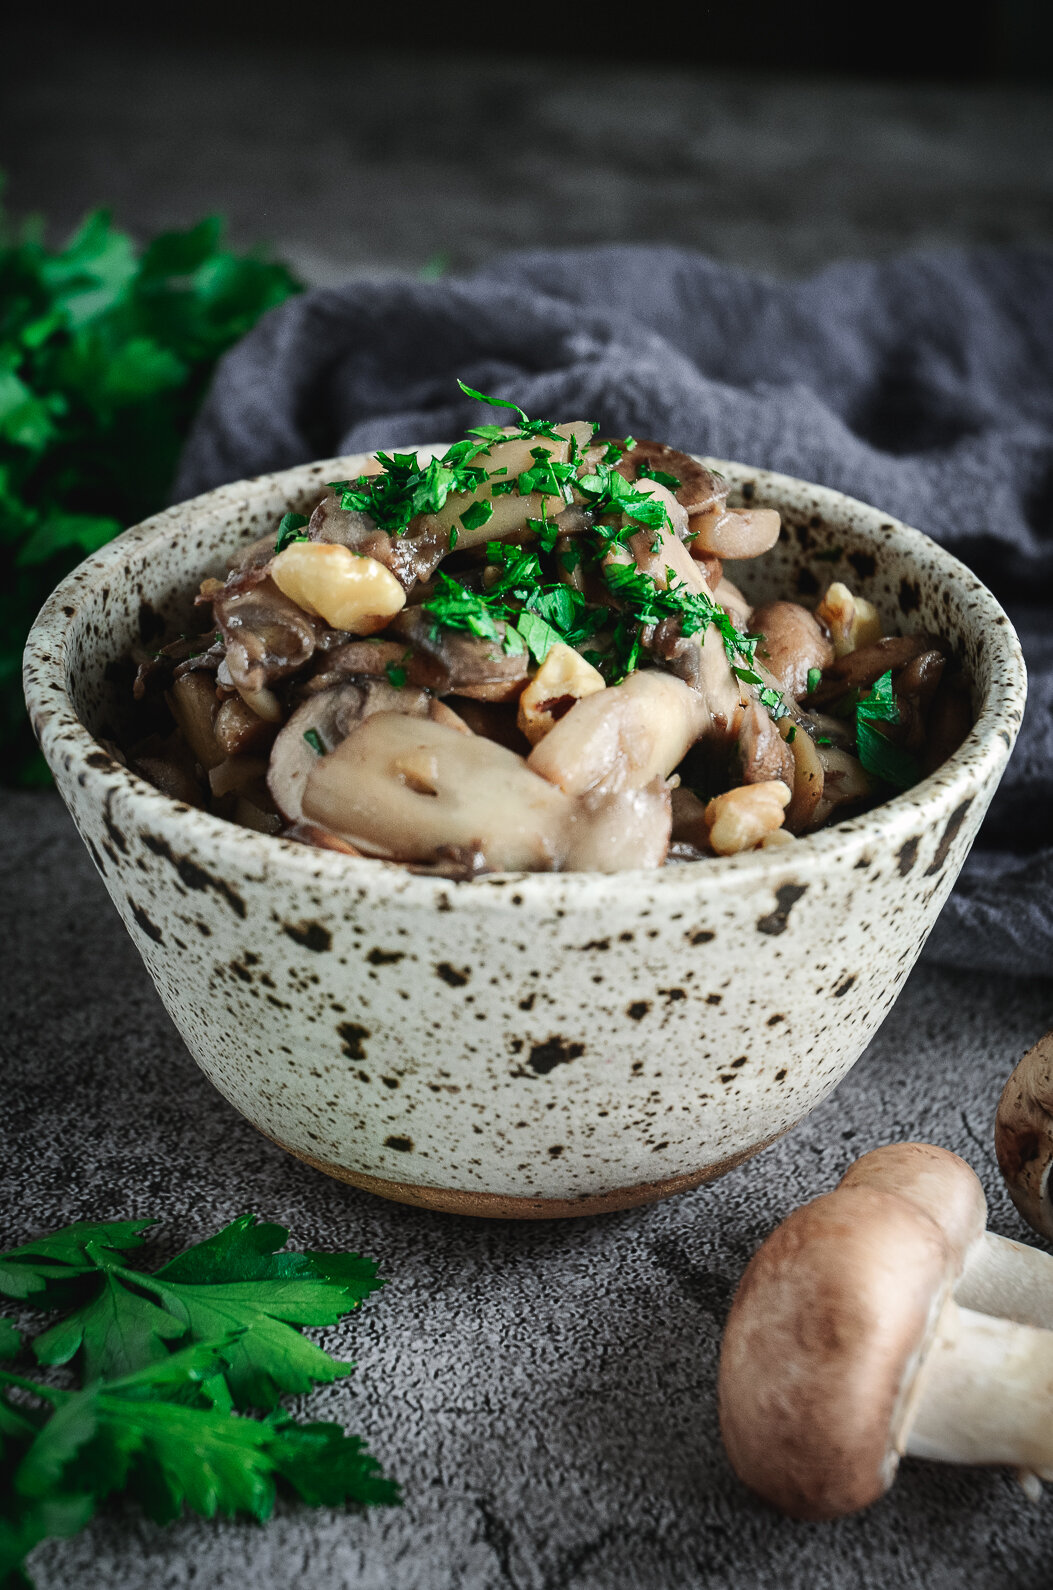 Sautéed Muhsrooms in bowl